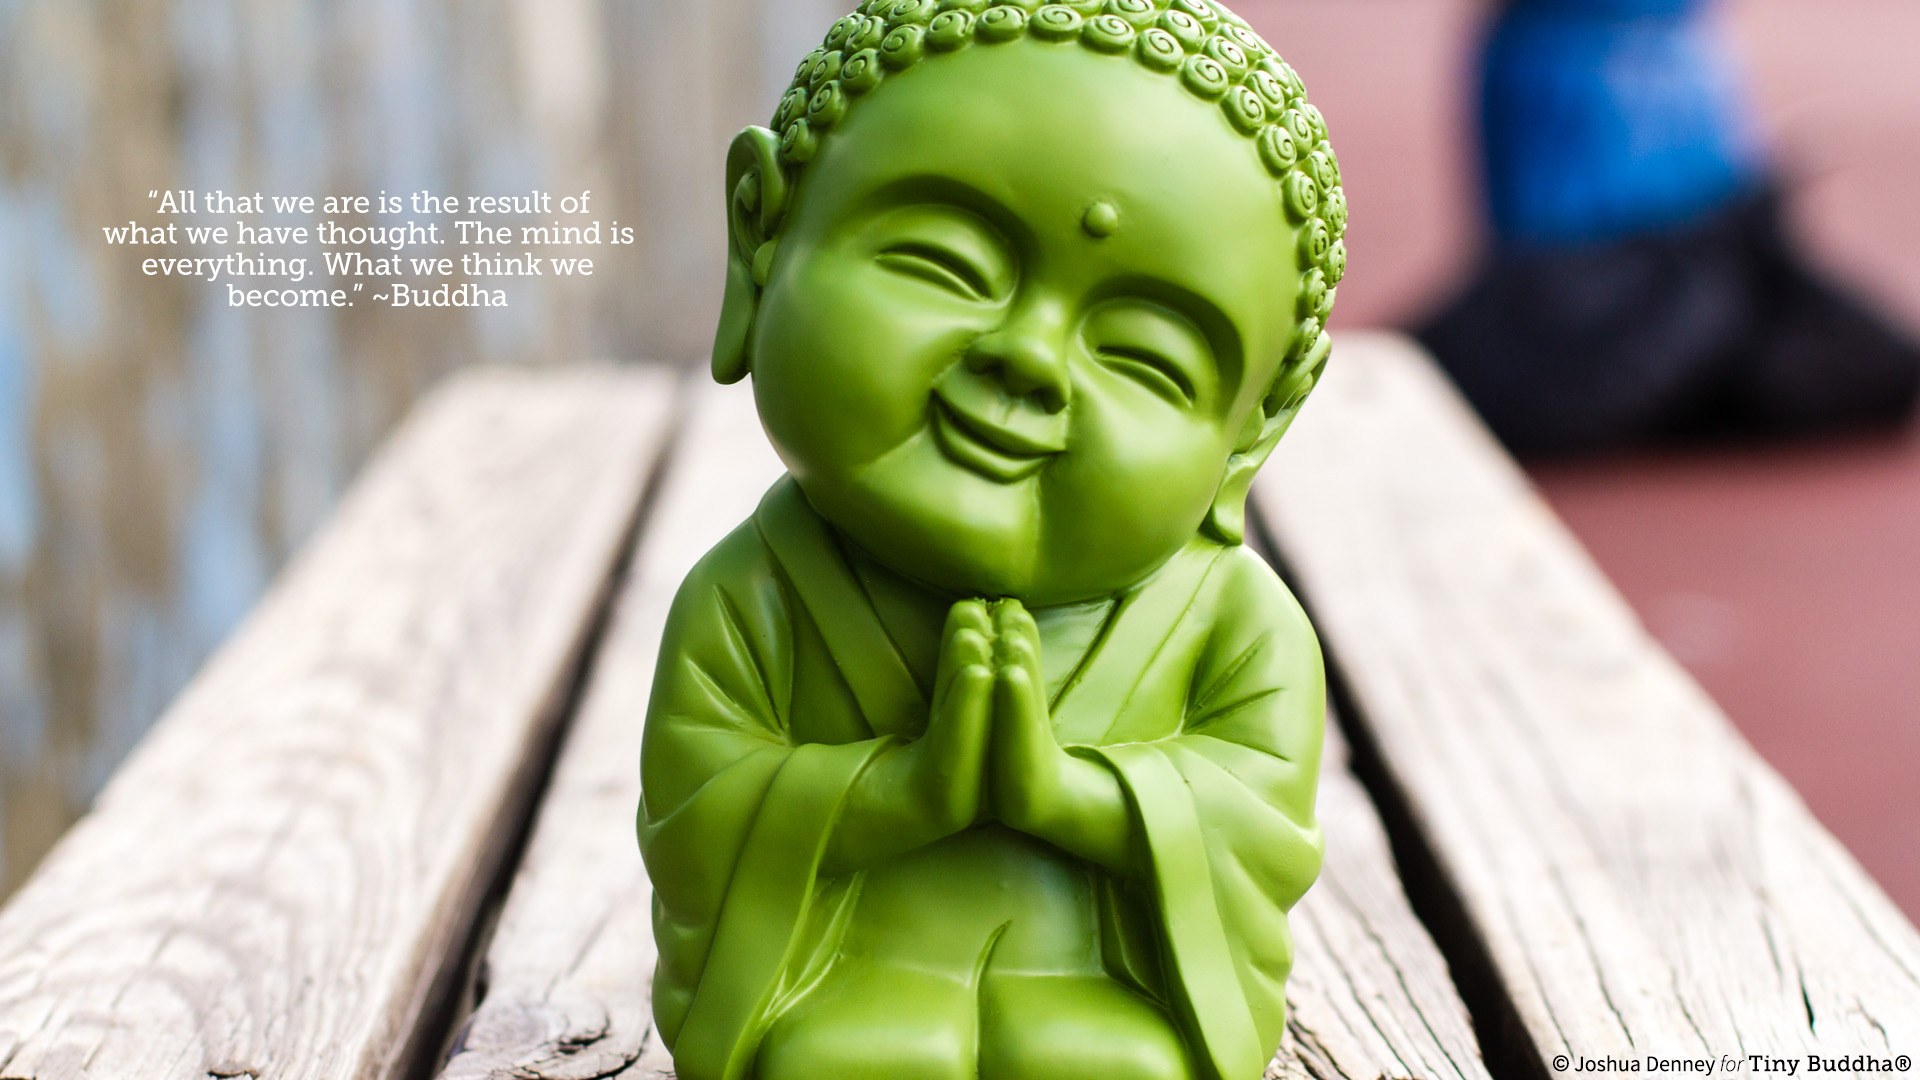 tiny-green-buddha-1920x1080.jpg